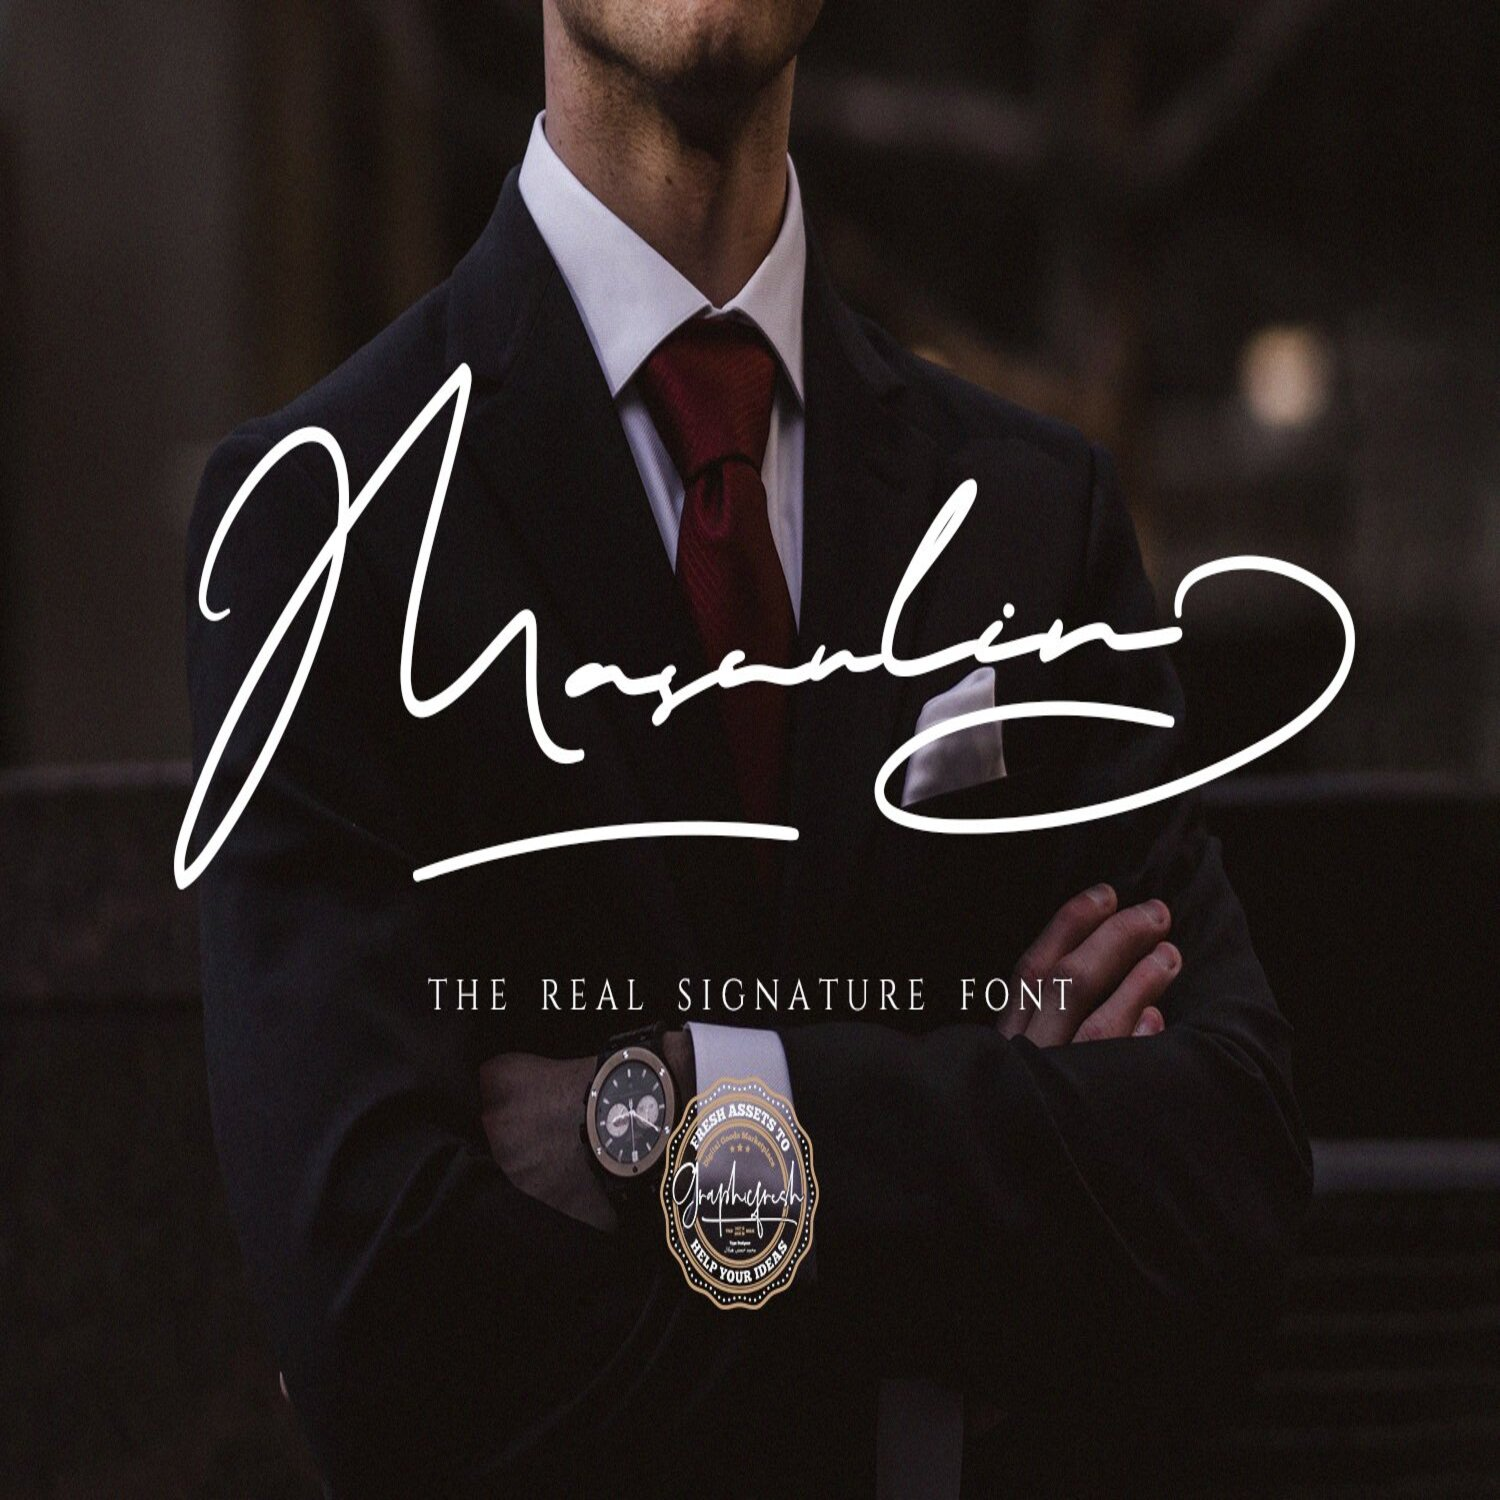 MASCULIN - The Real Signature Font main cover.